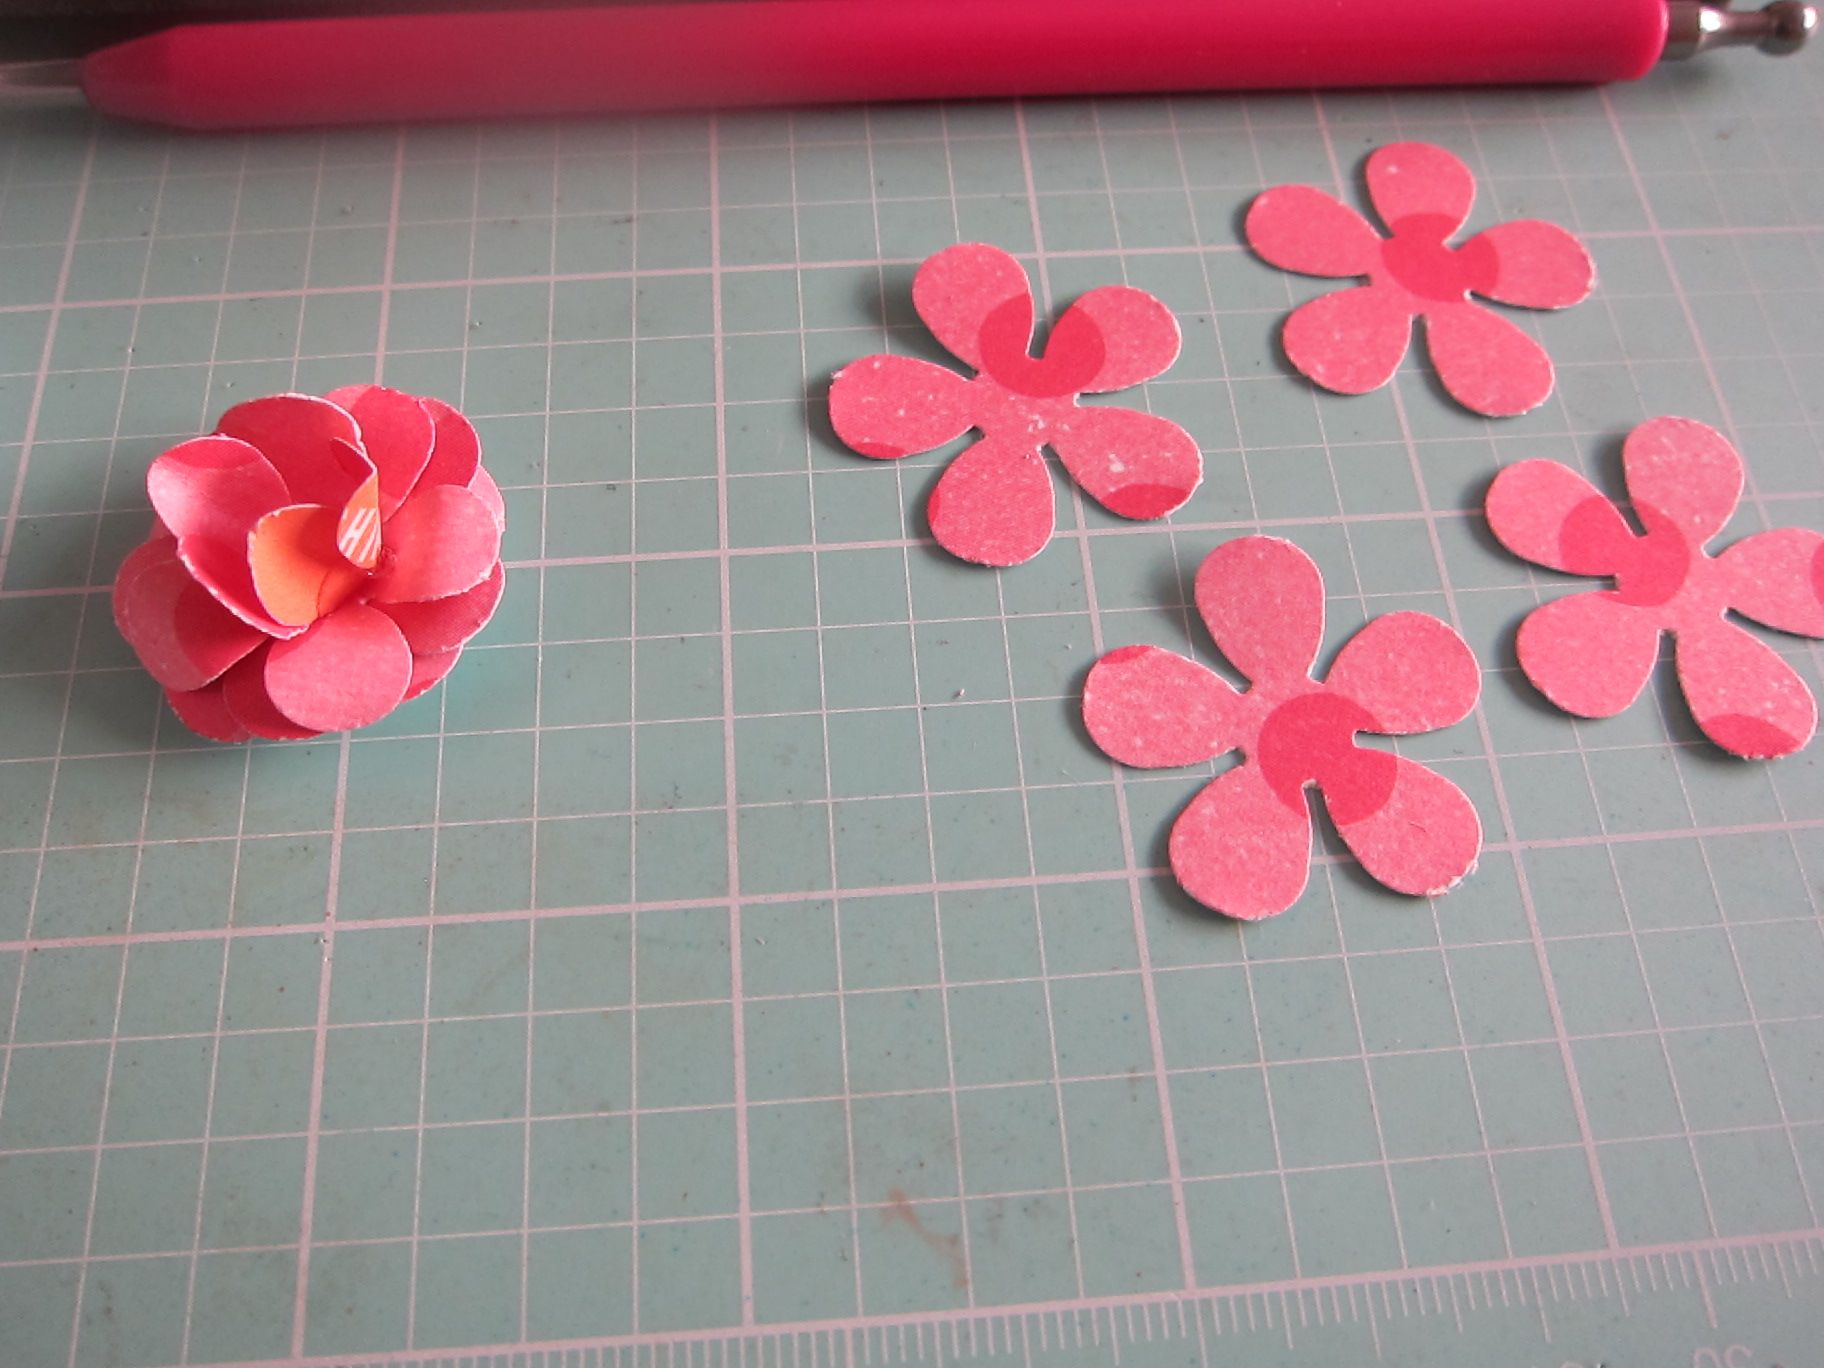 Make beautiful pinterest petals with therm o web therm o web pinterestweyamabeeg02 mightylinksfo